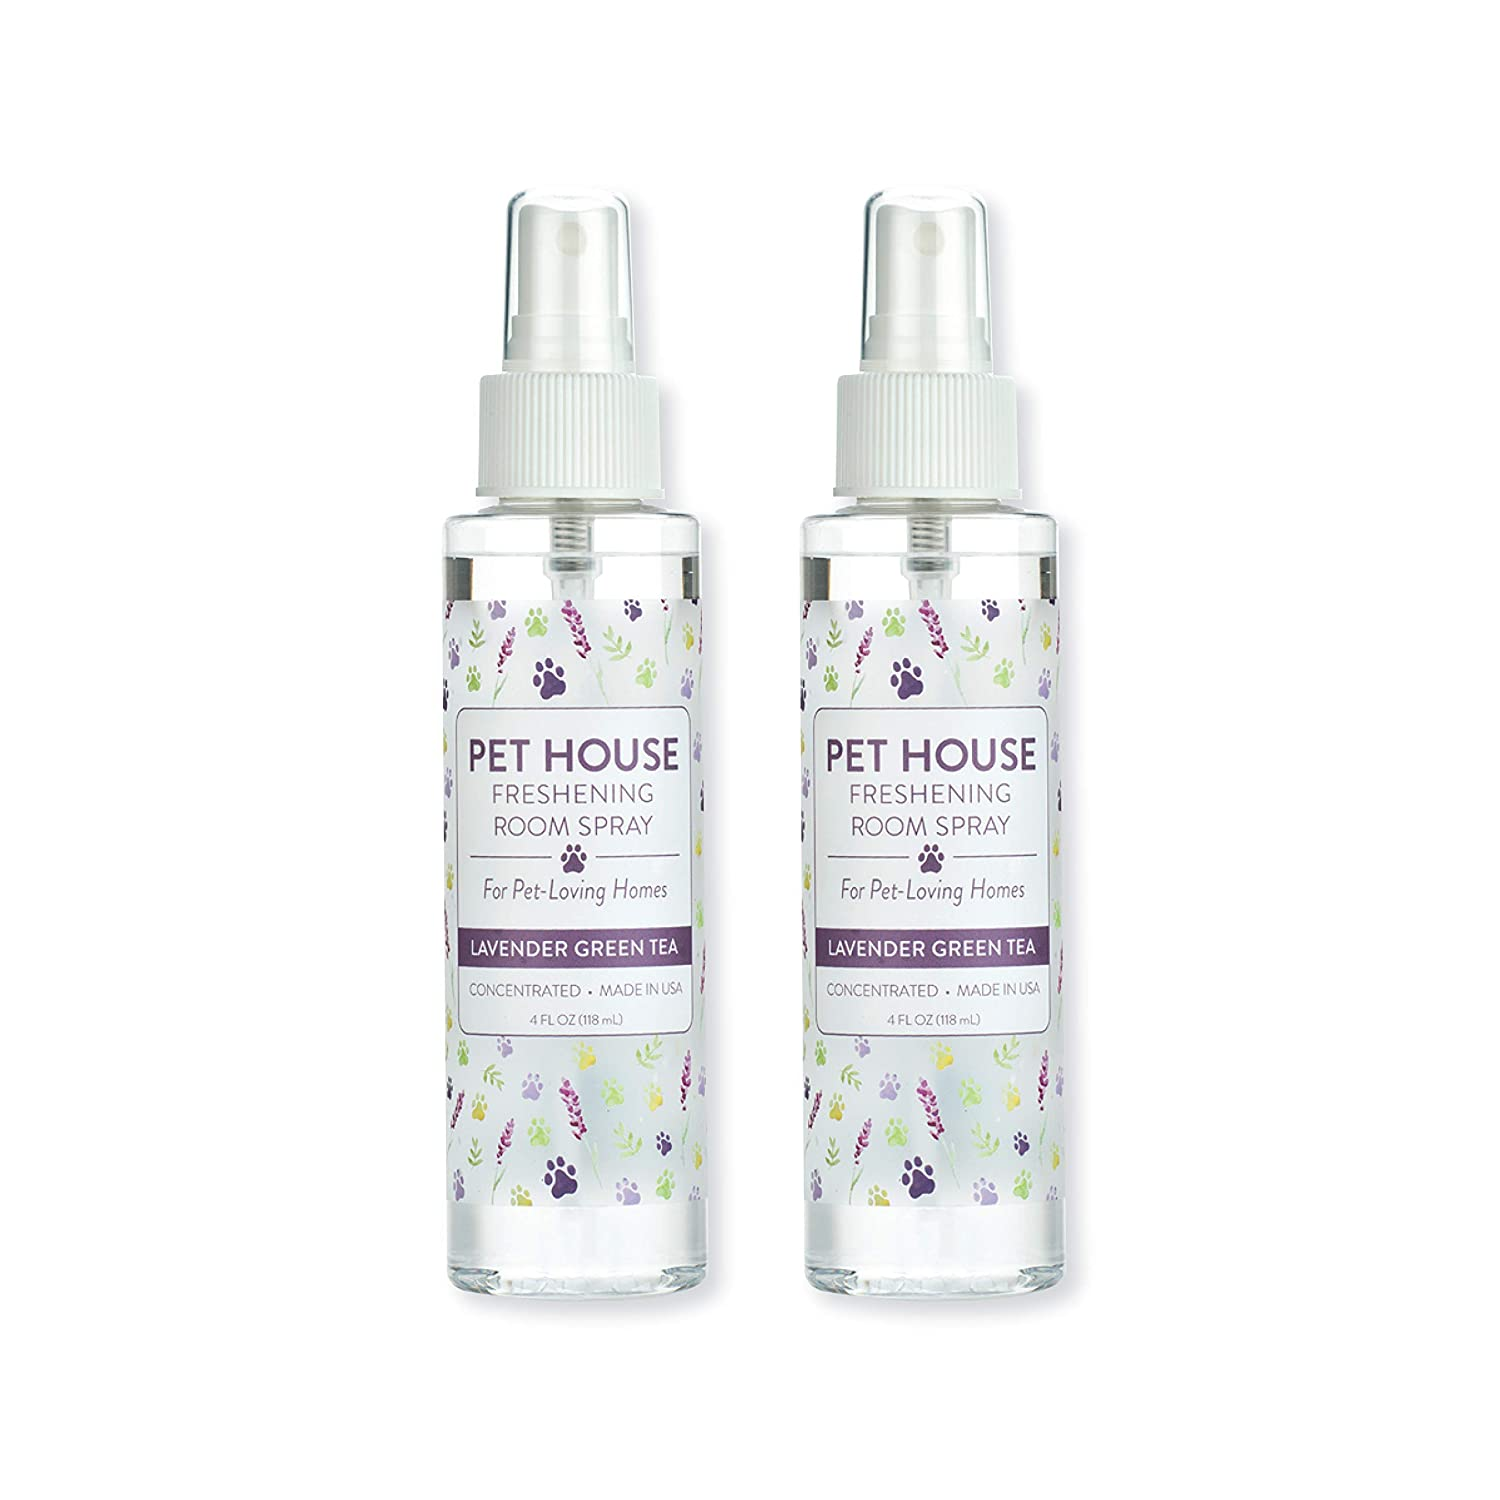 Pet House Pet Friendly Freshening Room Spray in 6 Fragrances - Non Toxic - Concentrated Air Freshening Spray Neutralizes Pet Odor – Effective, Fast-Acting – 4 oz - Pack of 2 (Lavender Green Tea)